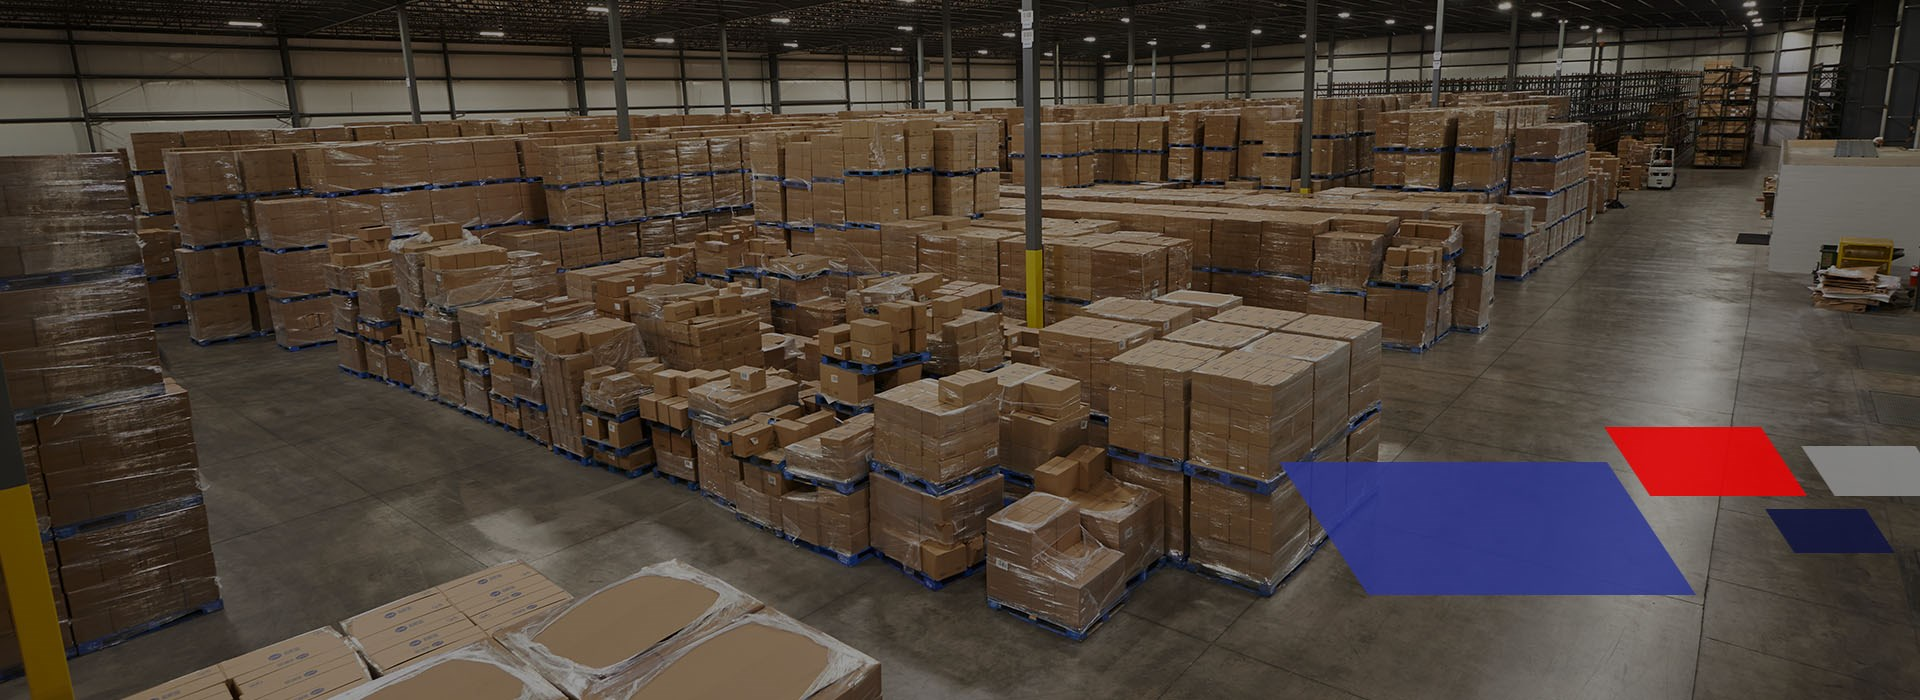 Warehousing in Pennsylvania